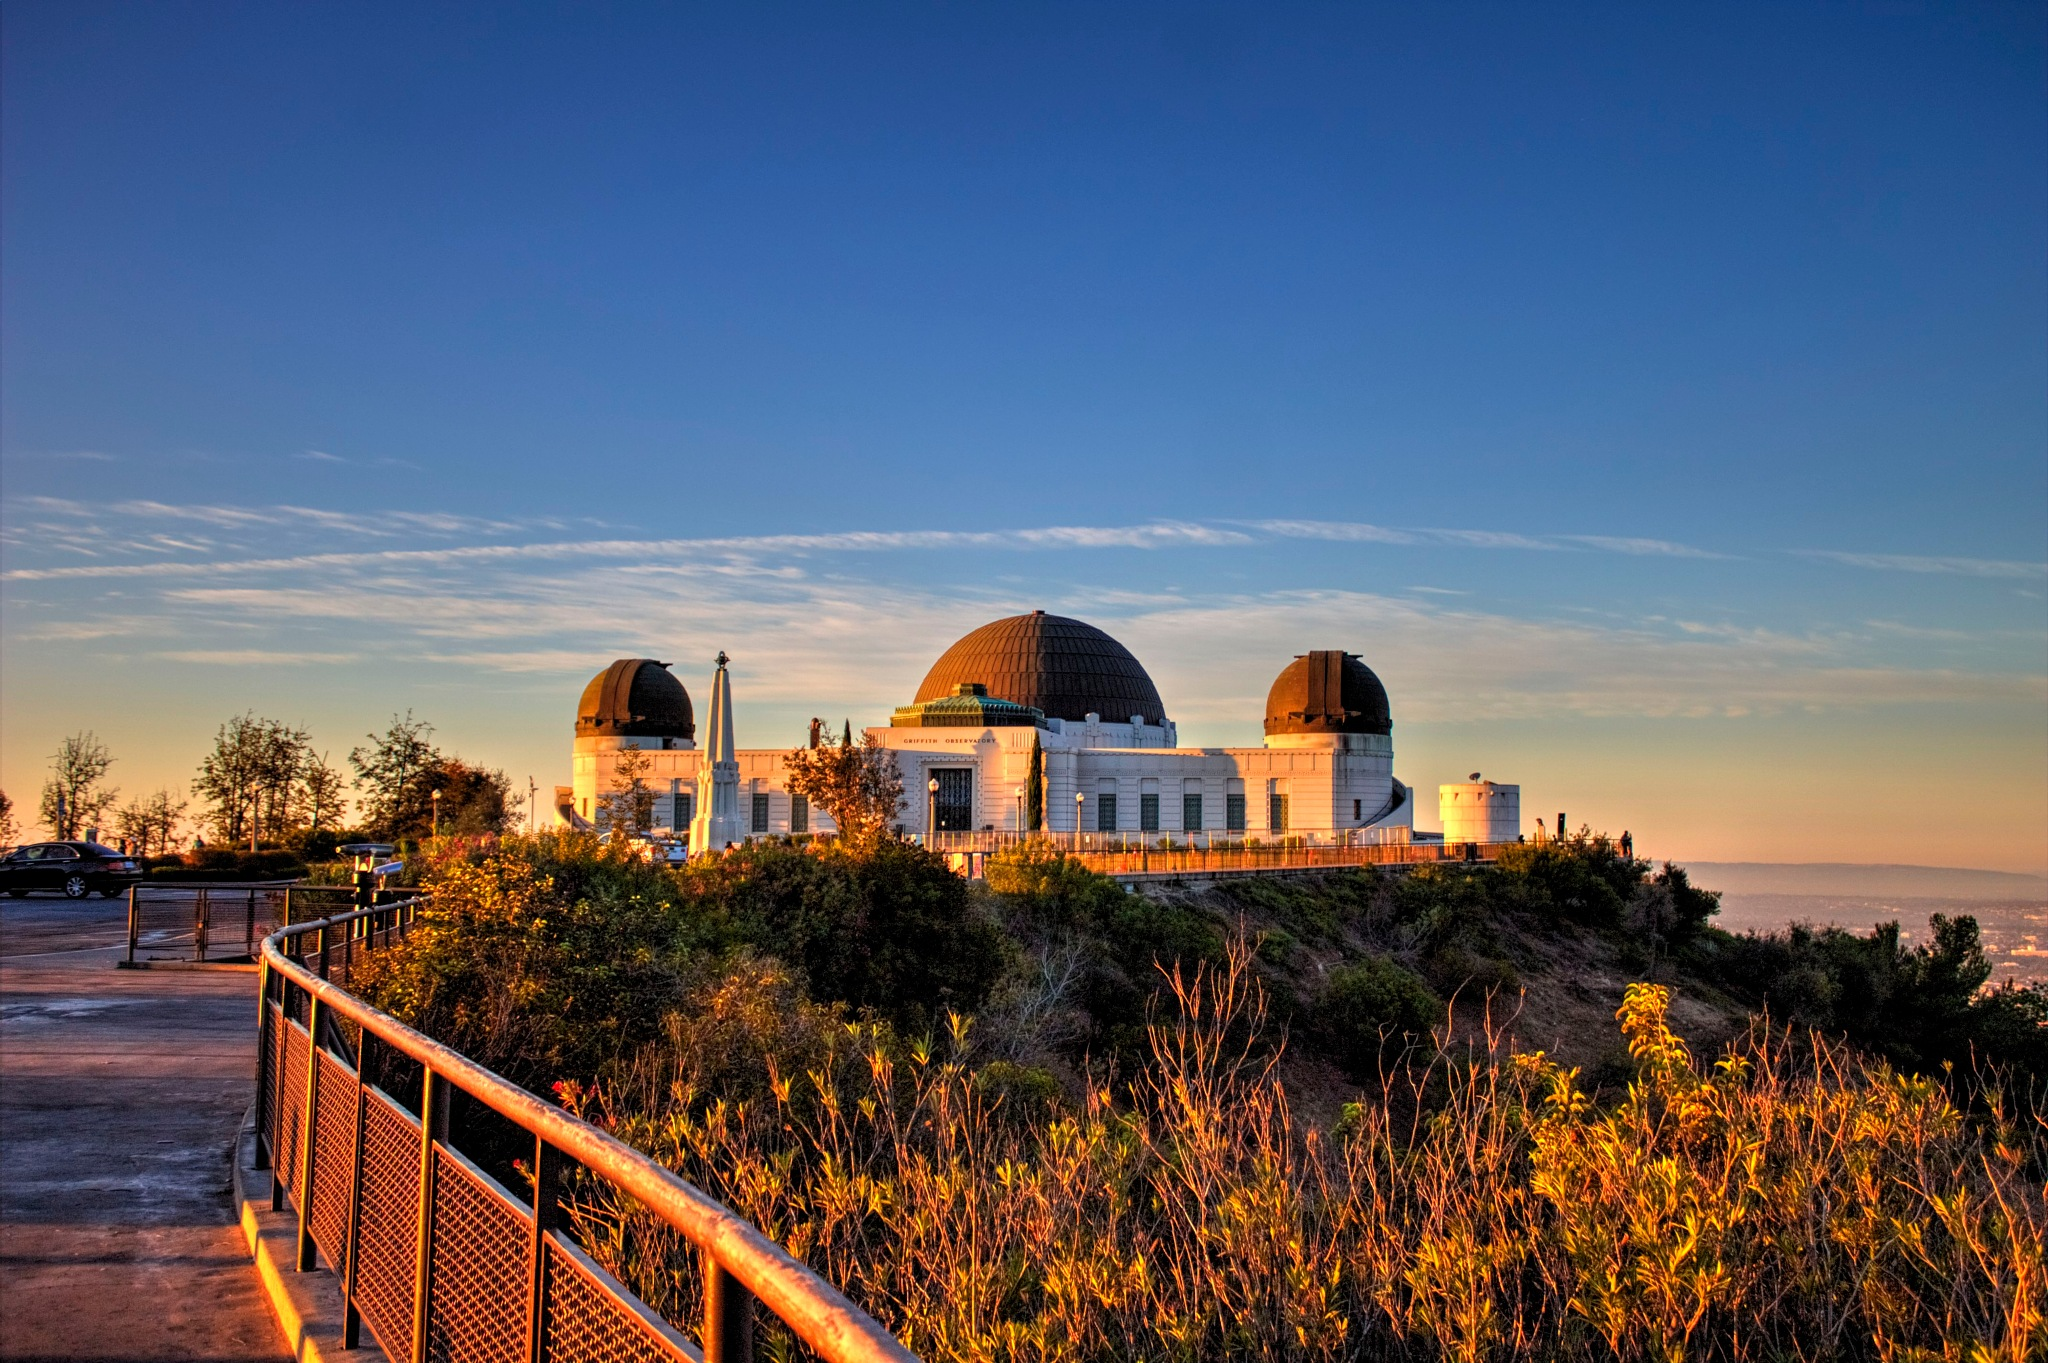 Griffith Observatory by Rick Evence